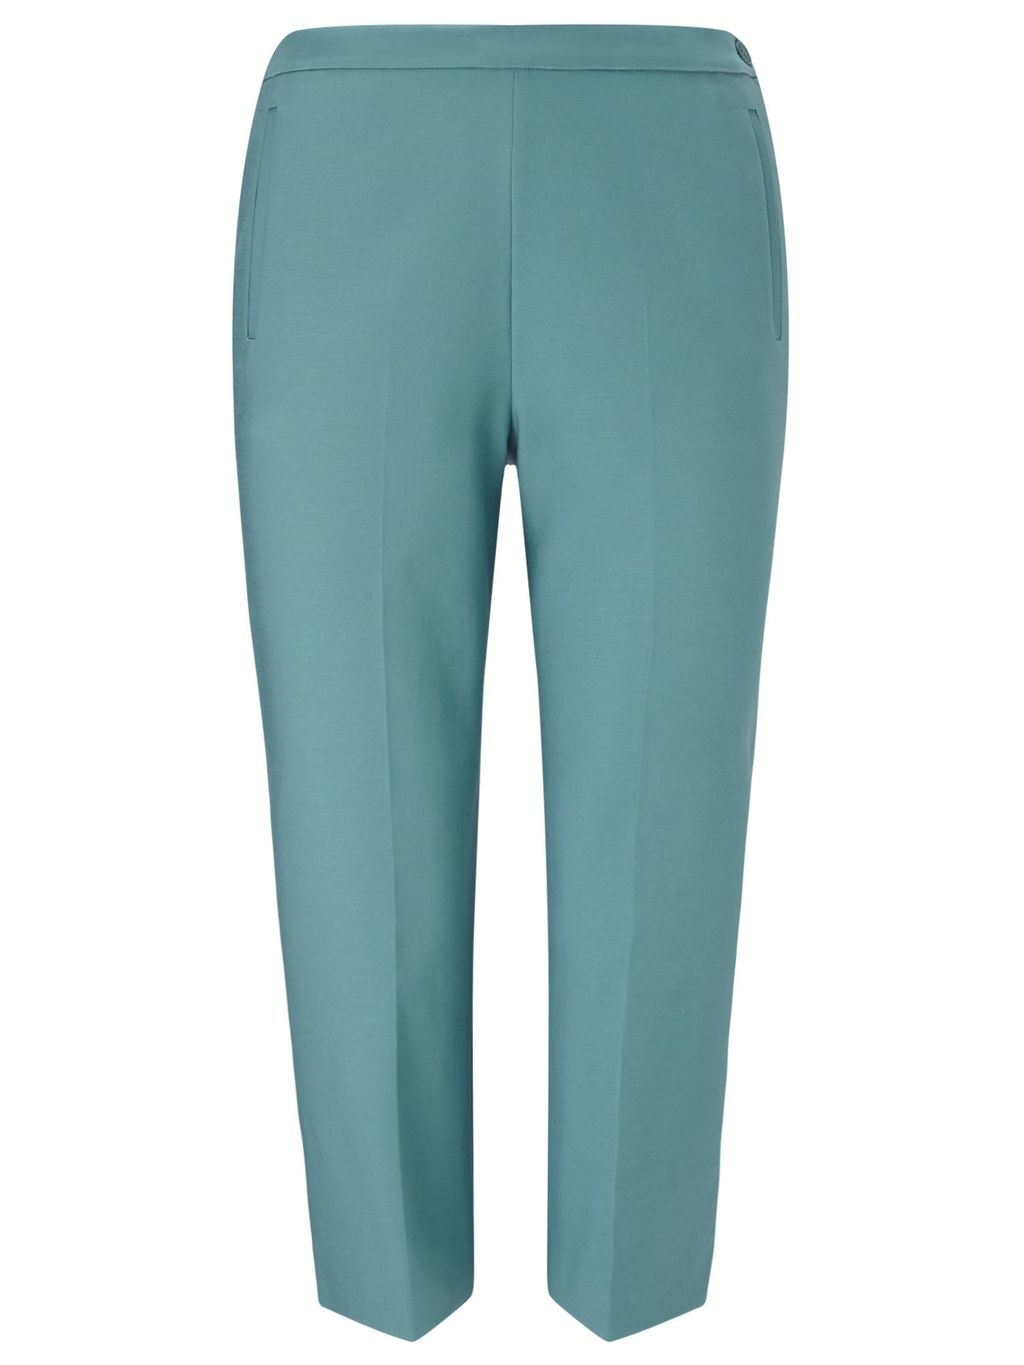 Crop Trouser, Turquoise - pattern: plain; waist: mid/regular rise; predominant colour: turquoise; length: calf length; fibres: polyester/polyamide - 100%; waist detail: feature waist detail; texture group: crepes; fit: slim leg; pattern type: fabric; style: standard; occasions: creative work; season: s/s 2016; wardrobe: highlight